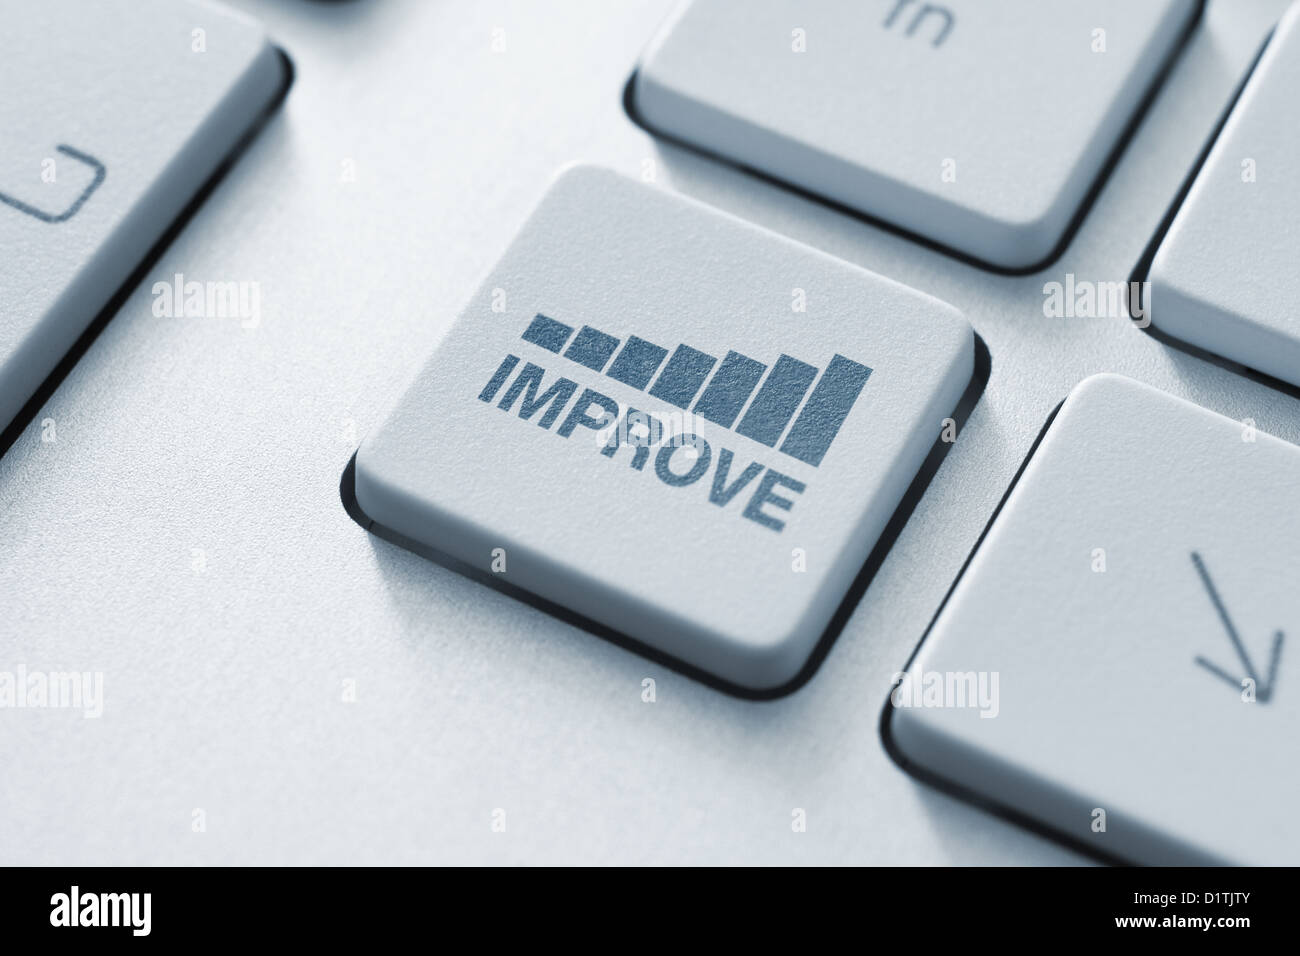 Improve button on the keyboard. Toned Image. - Stock Image